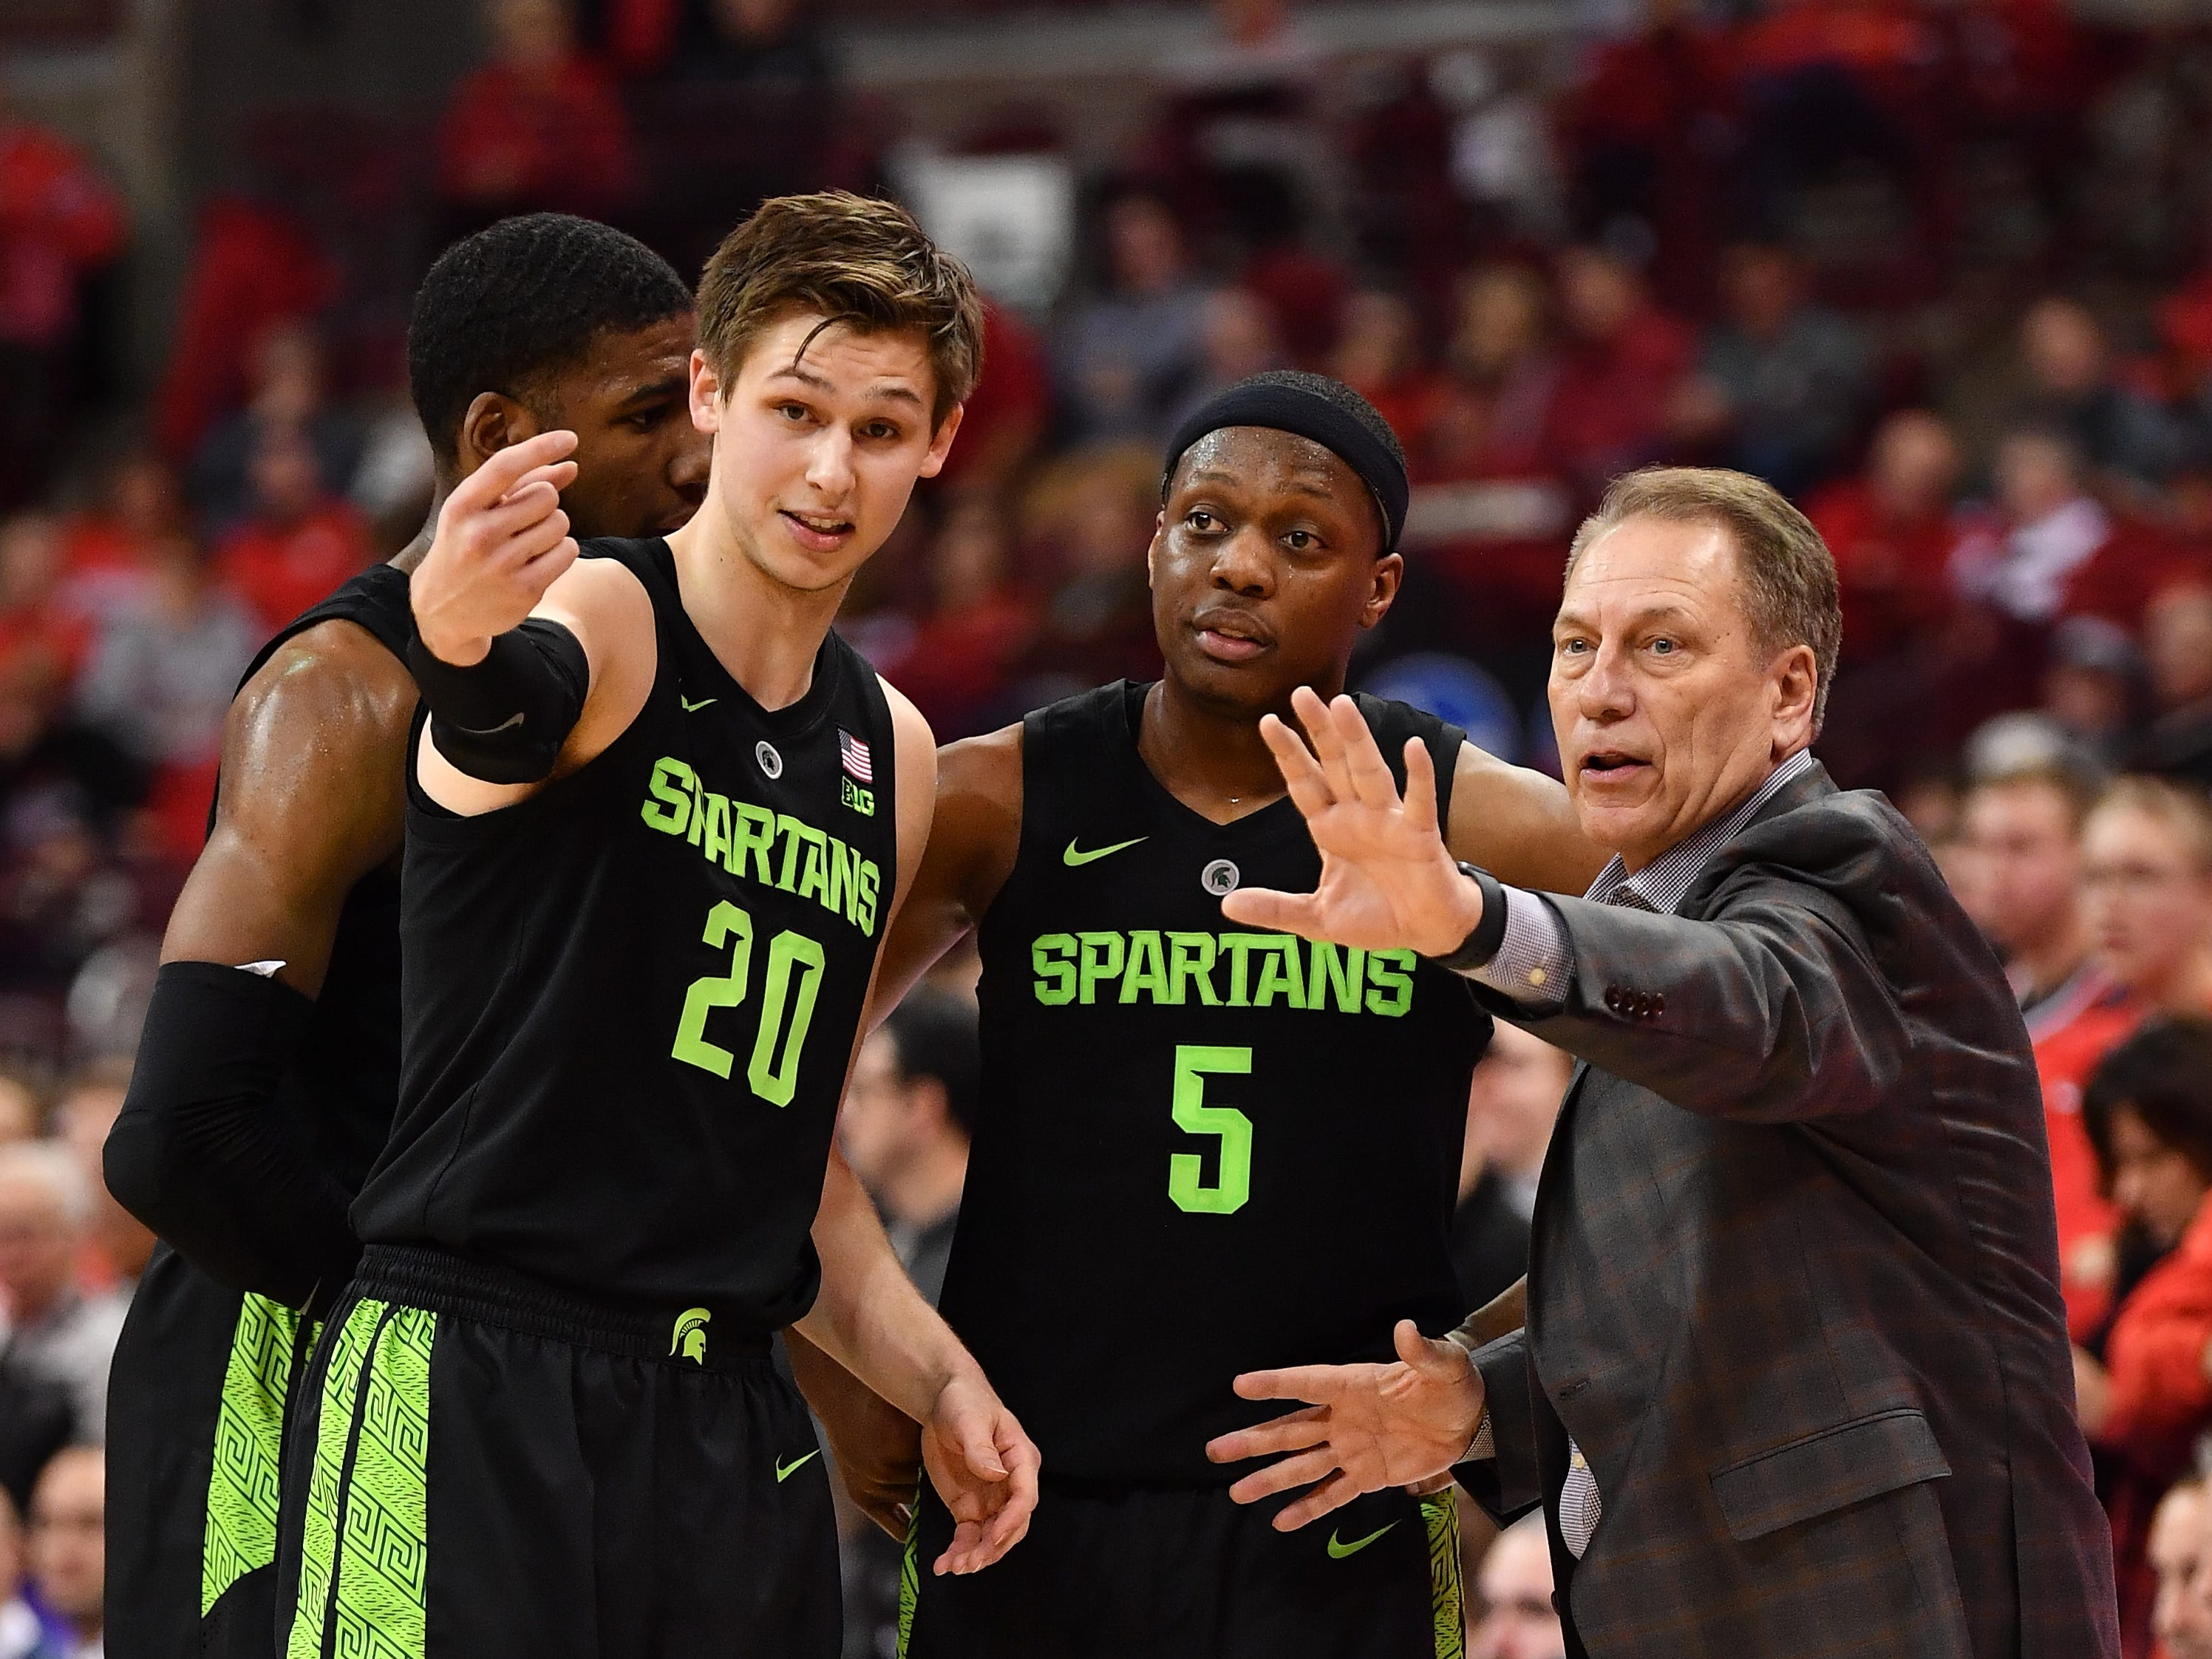 Michigan State's Matt McQuaid (20) and Cassius Winston (5) talk with coach Tom Izzo in the second half against Ohio State on Jan. 5, 2019 at Value City Arena in Columbus, Ohio.